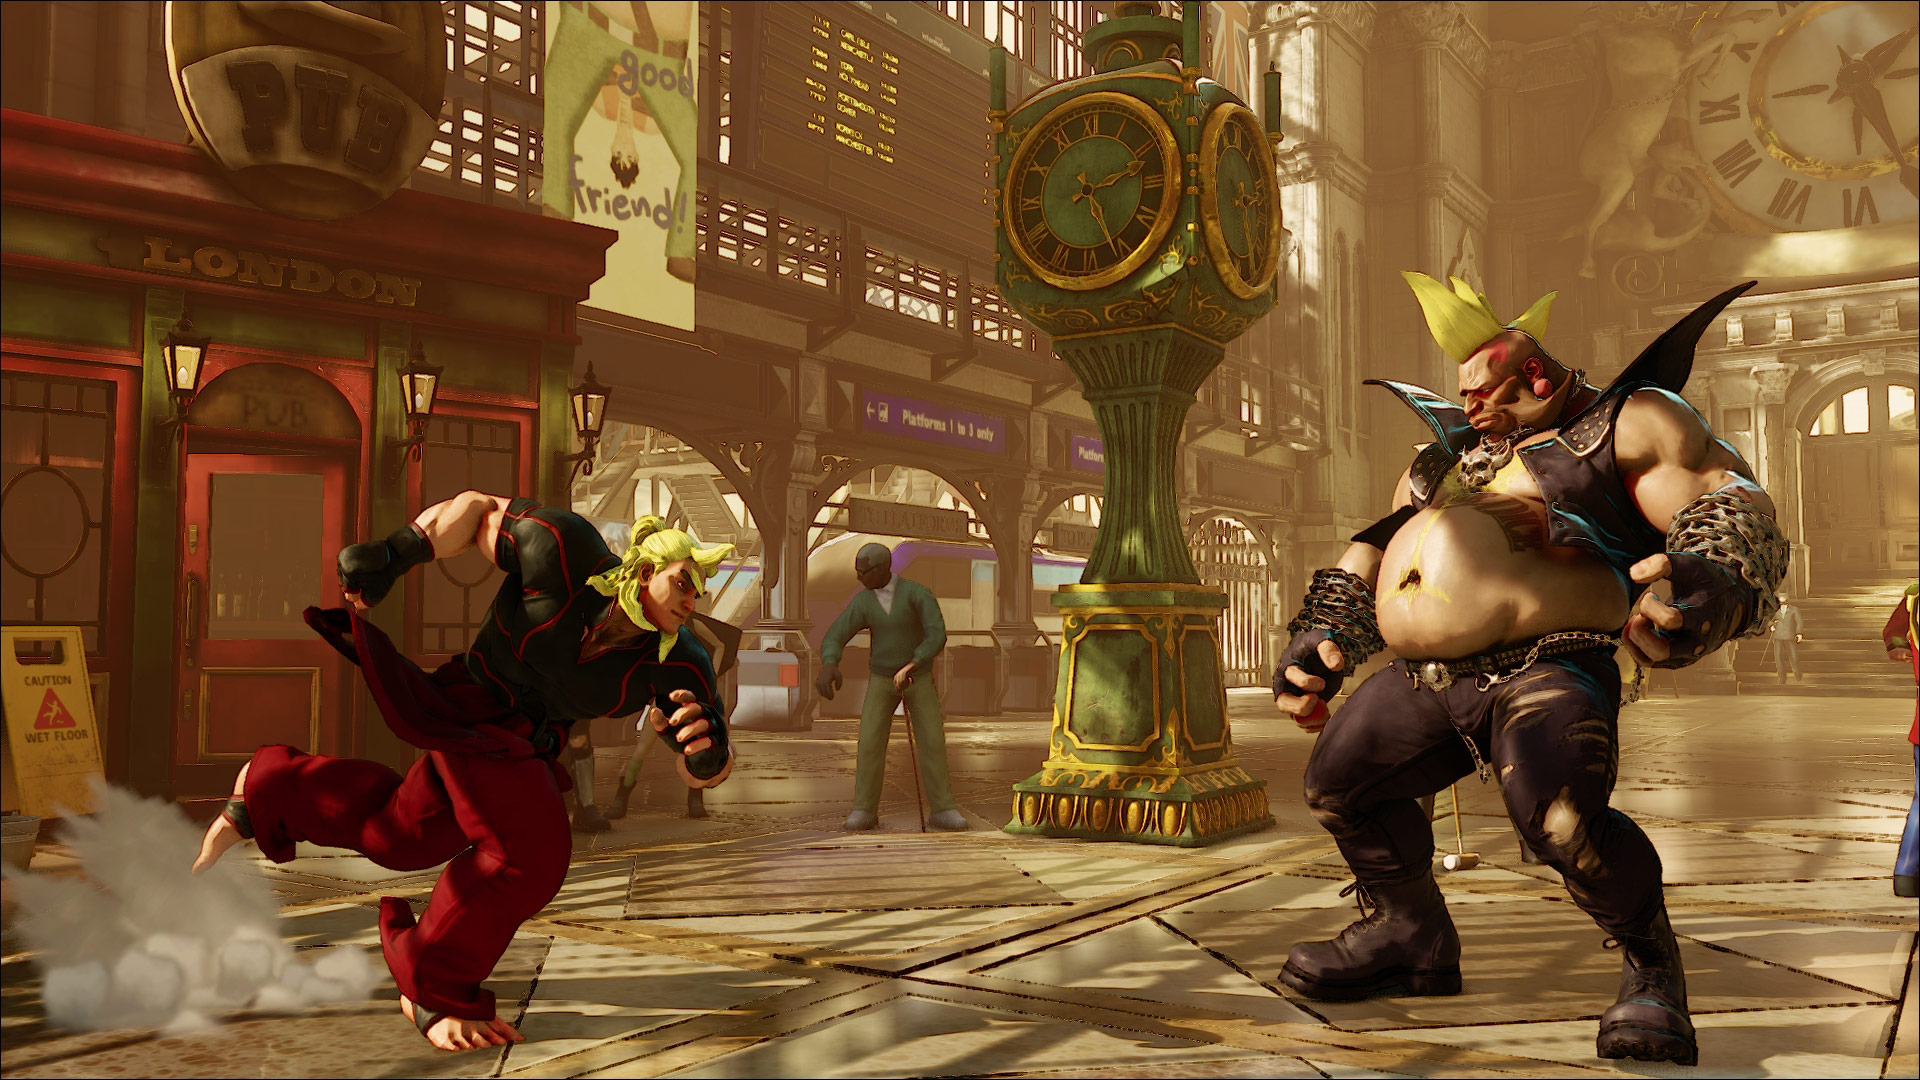 Ken's V-Trigger and V-Skill explained 1 out of 4 image gallery